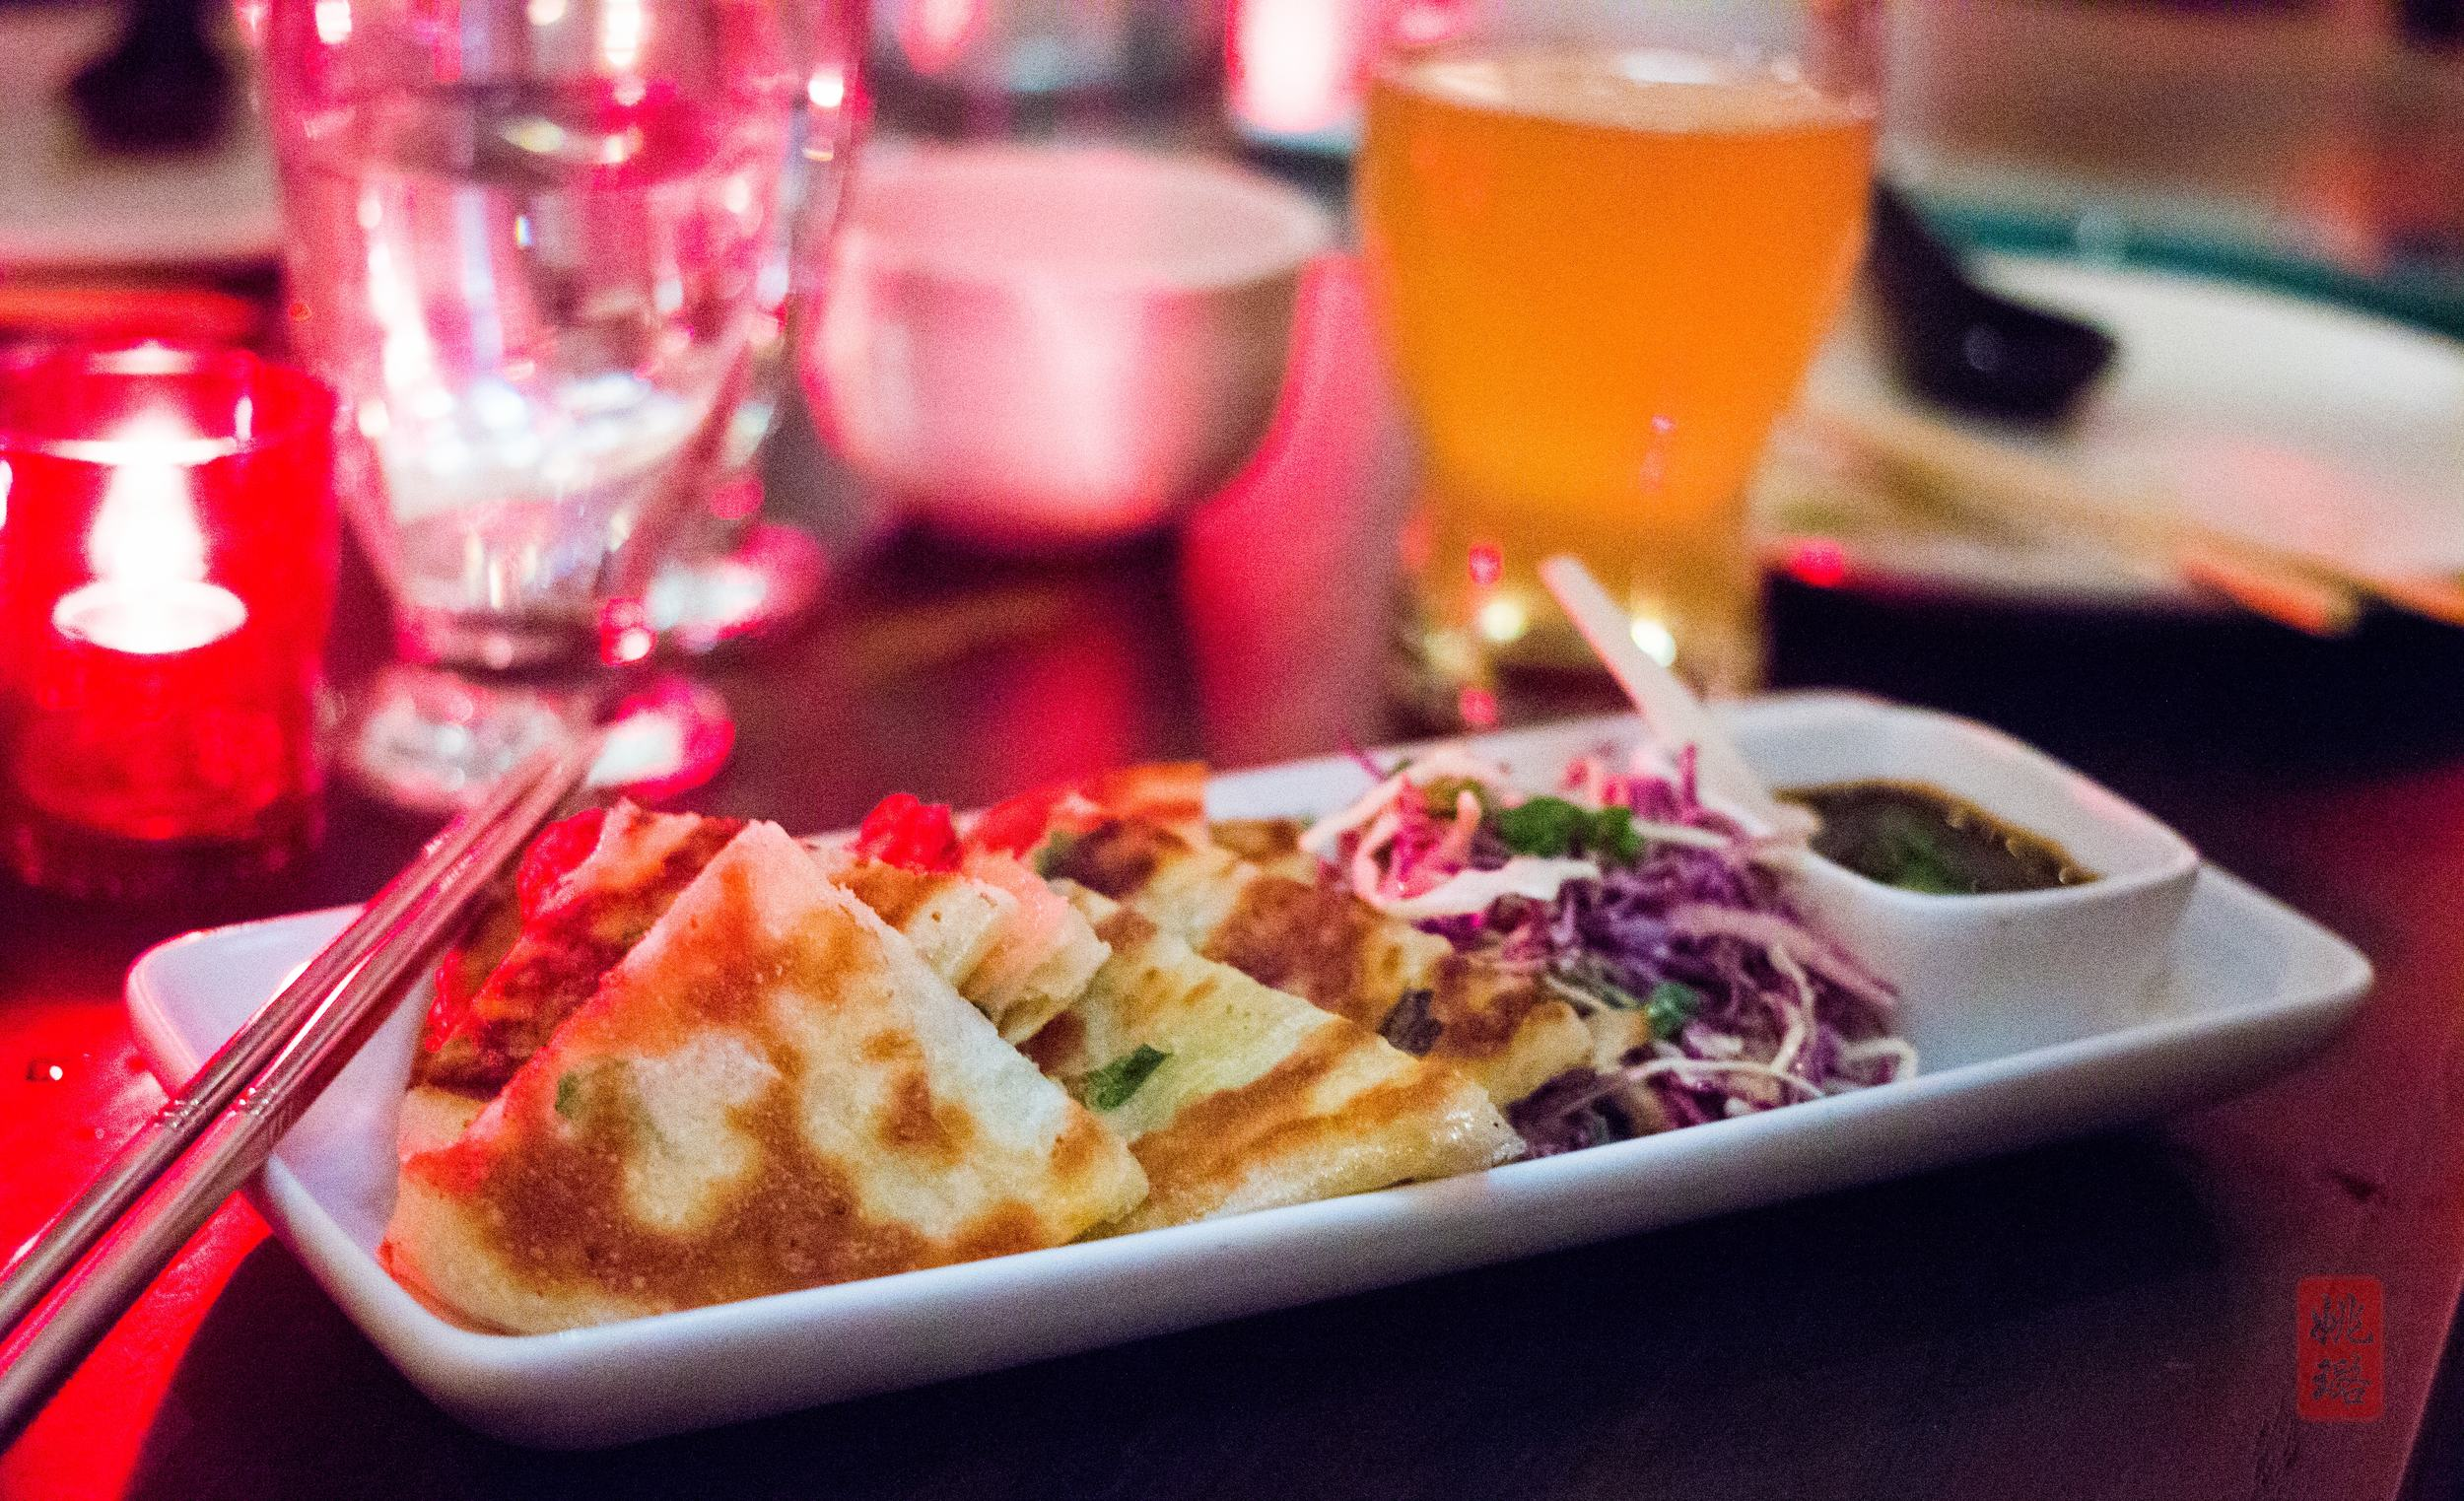 Scallion pancakes - coleslaw and hoison sauce